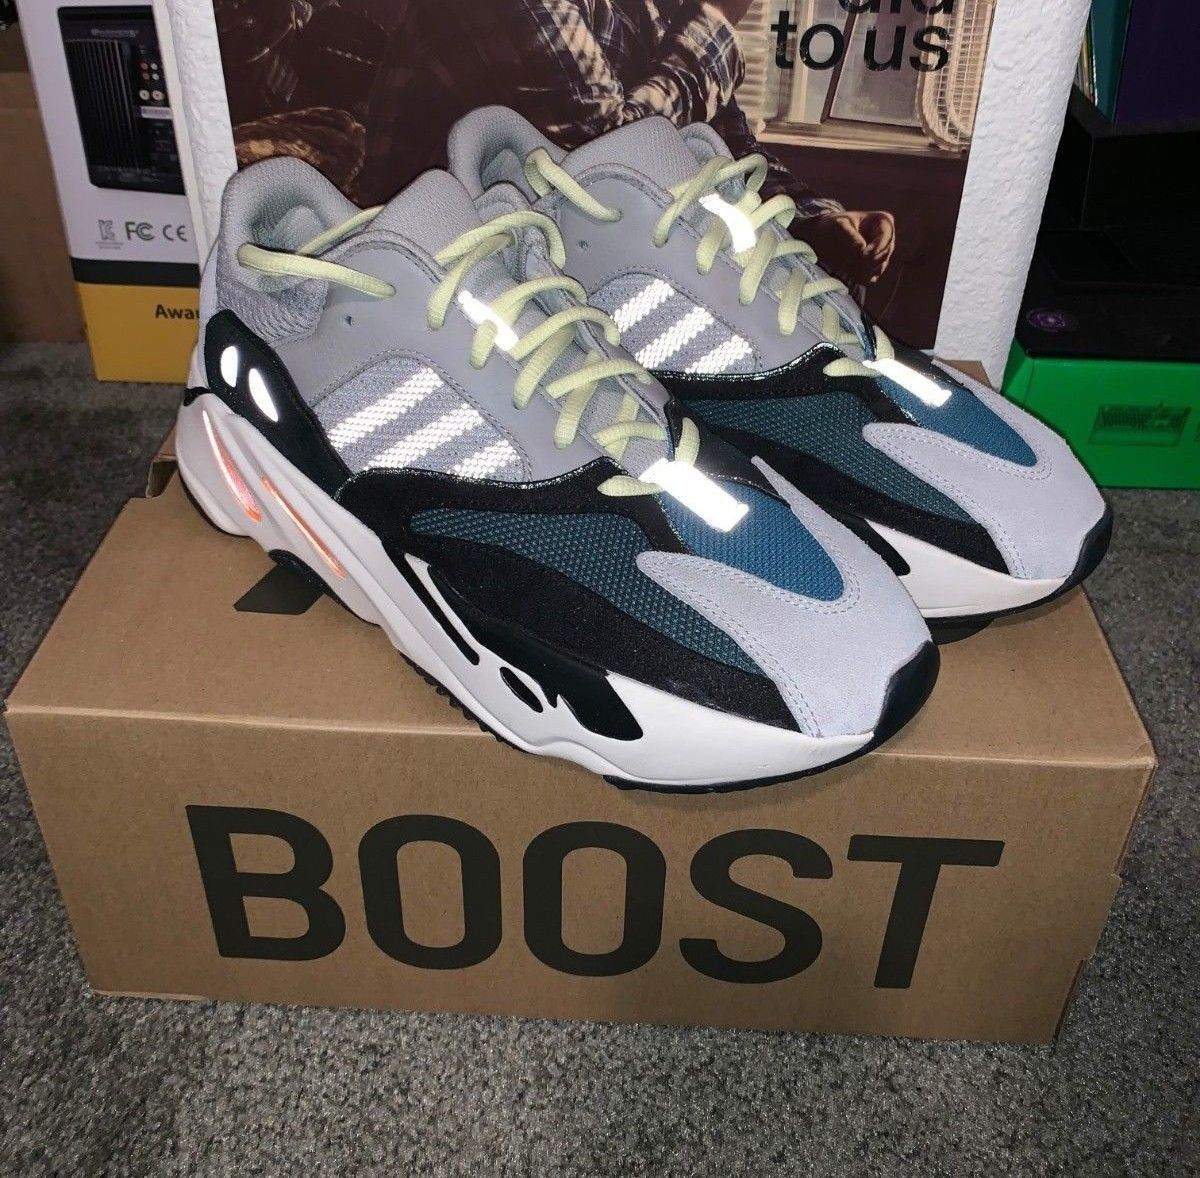 47c4a537817ee Details about Adidas Yeezy Boost Wave Runner 700 Mauve EE9614 US ...